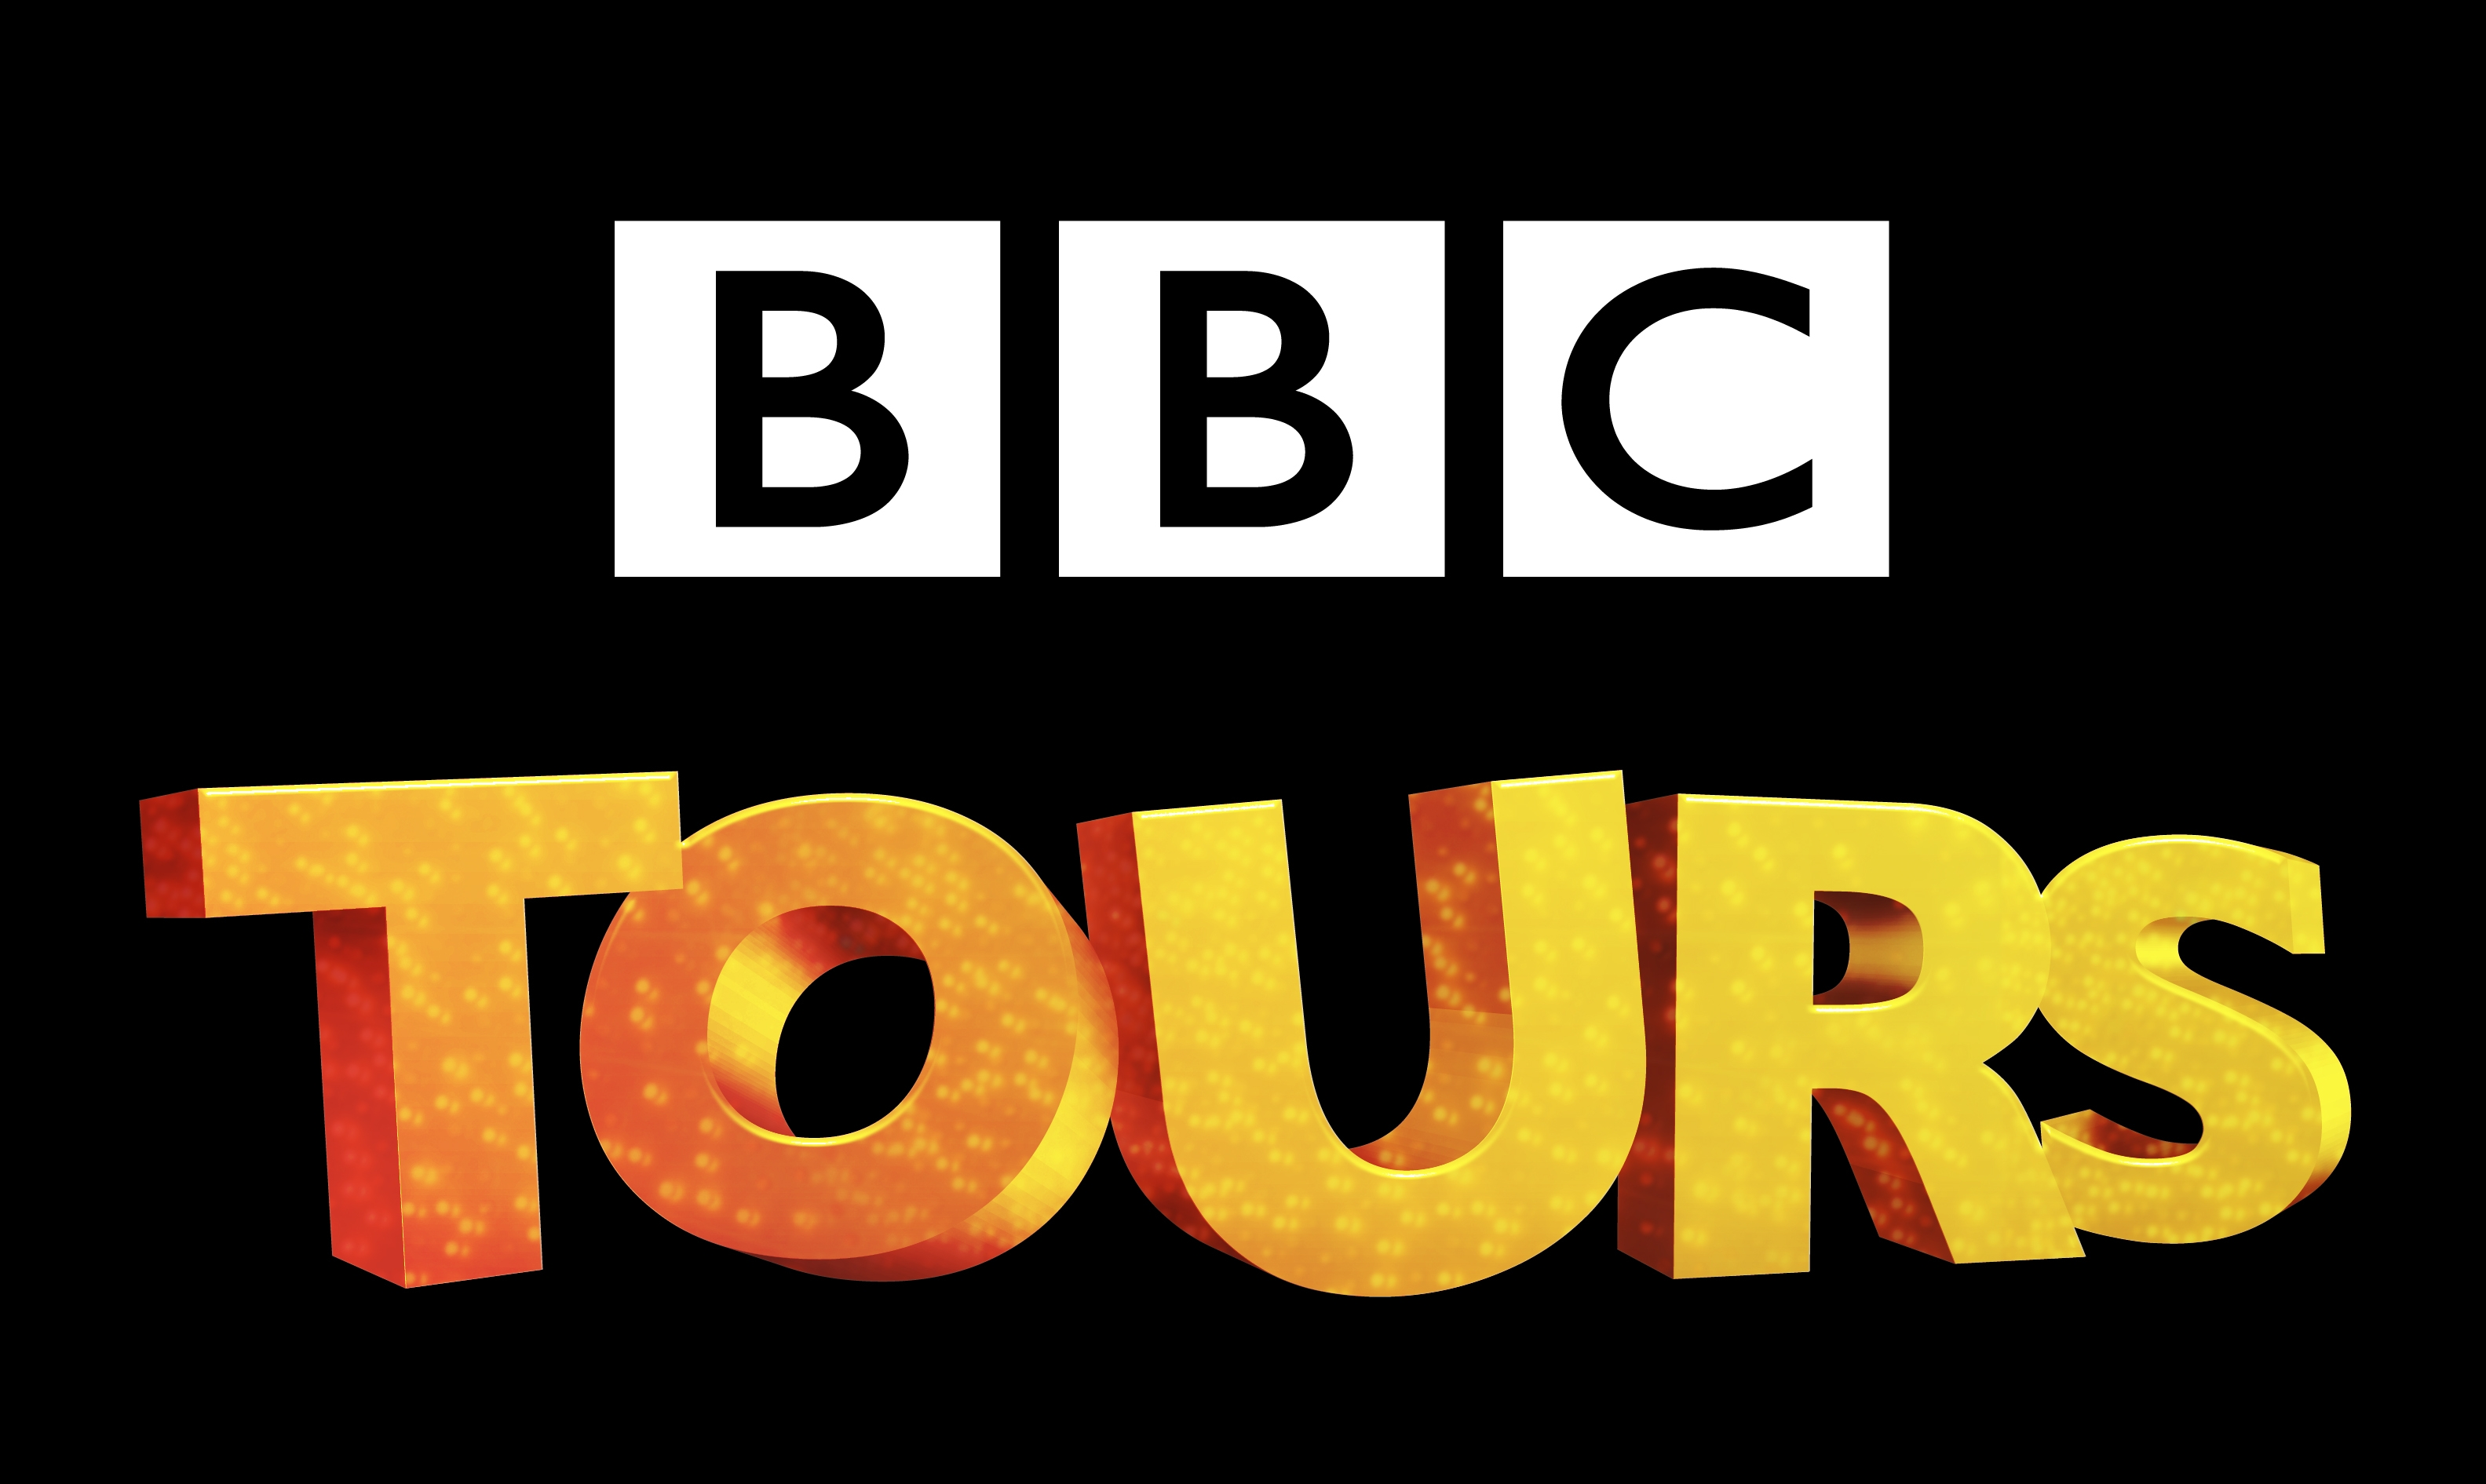 BBC Tour Newcastle logo